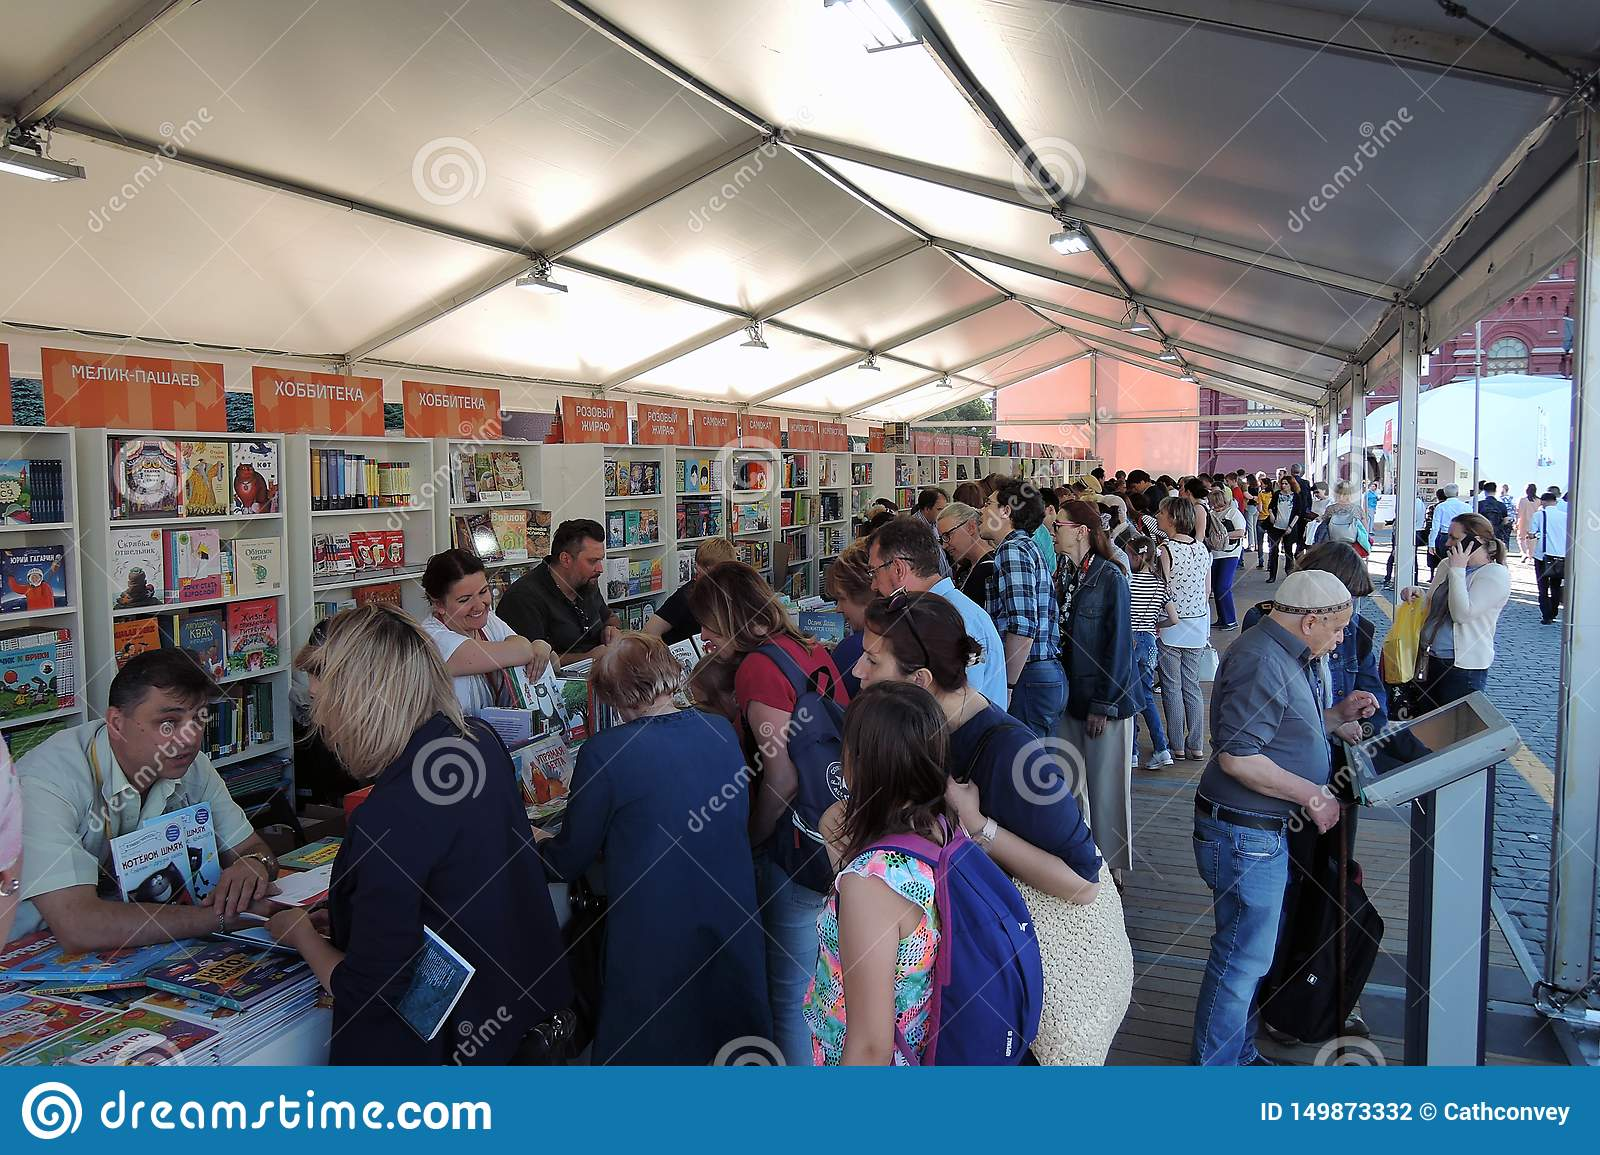 The Red Square Book Fair in Moscow.